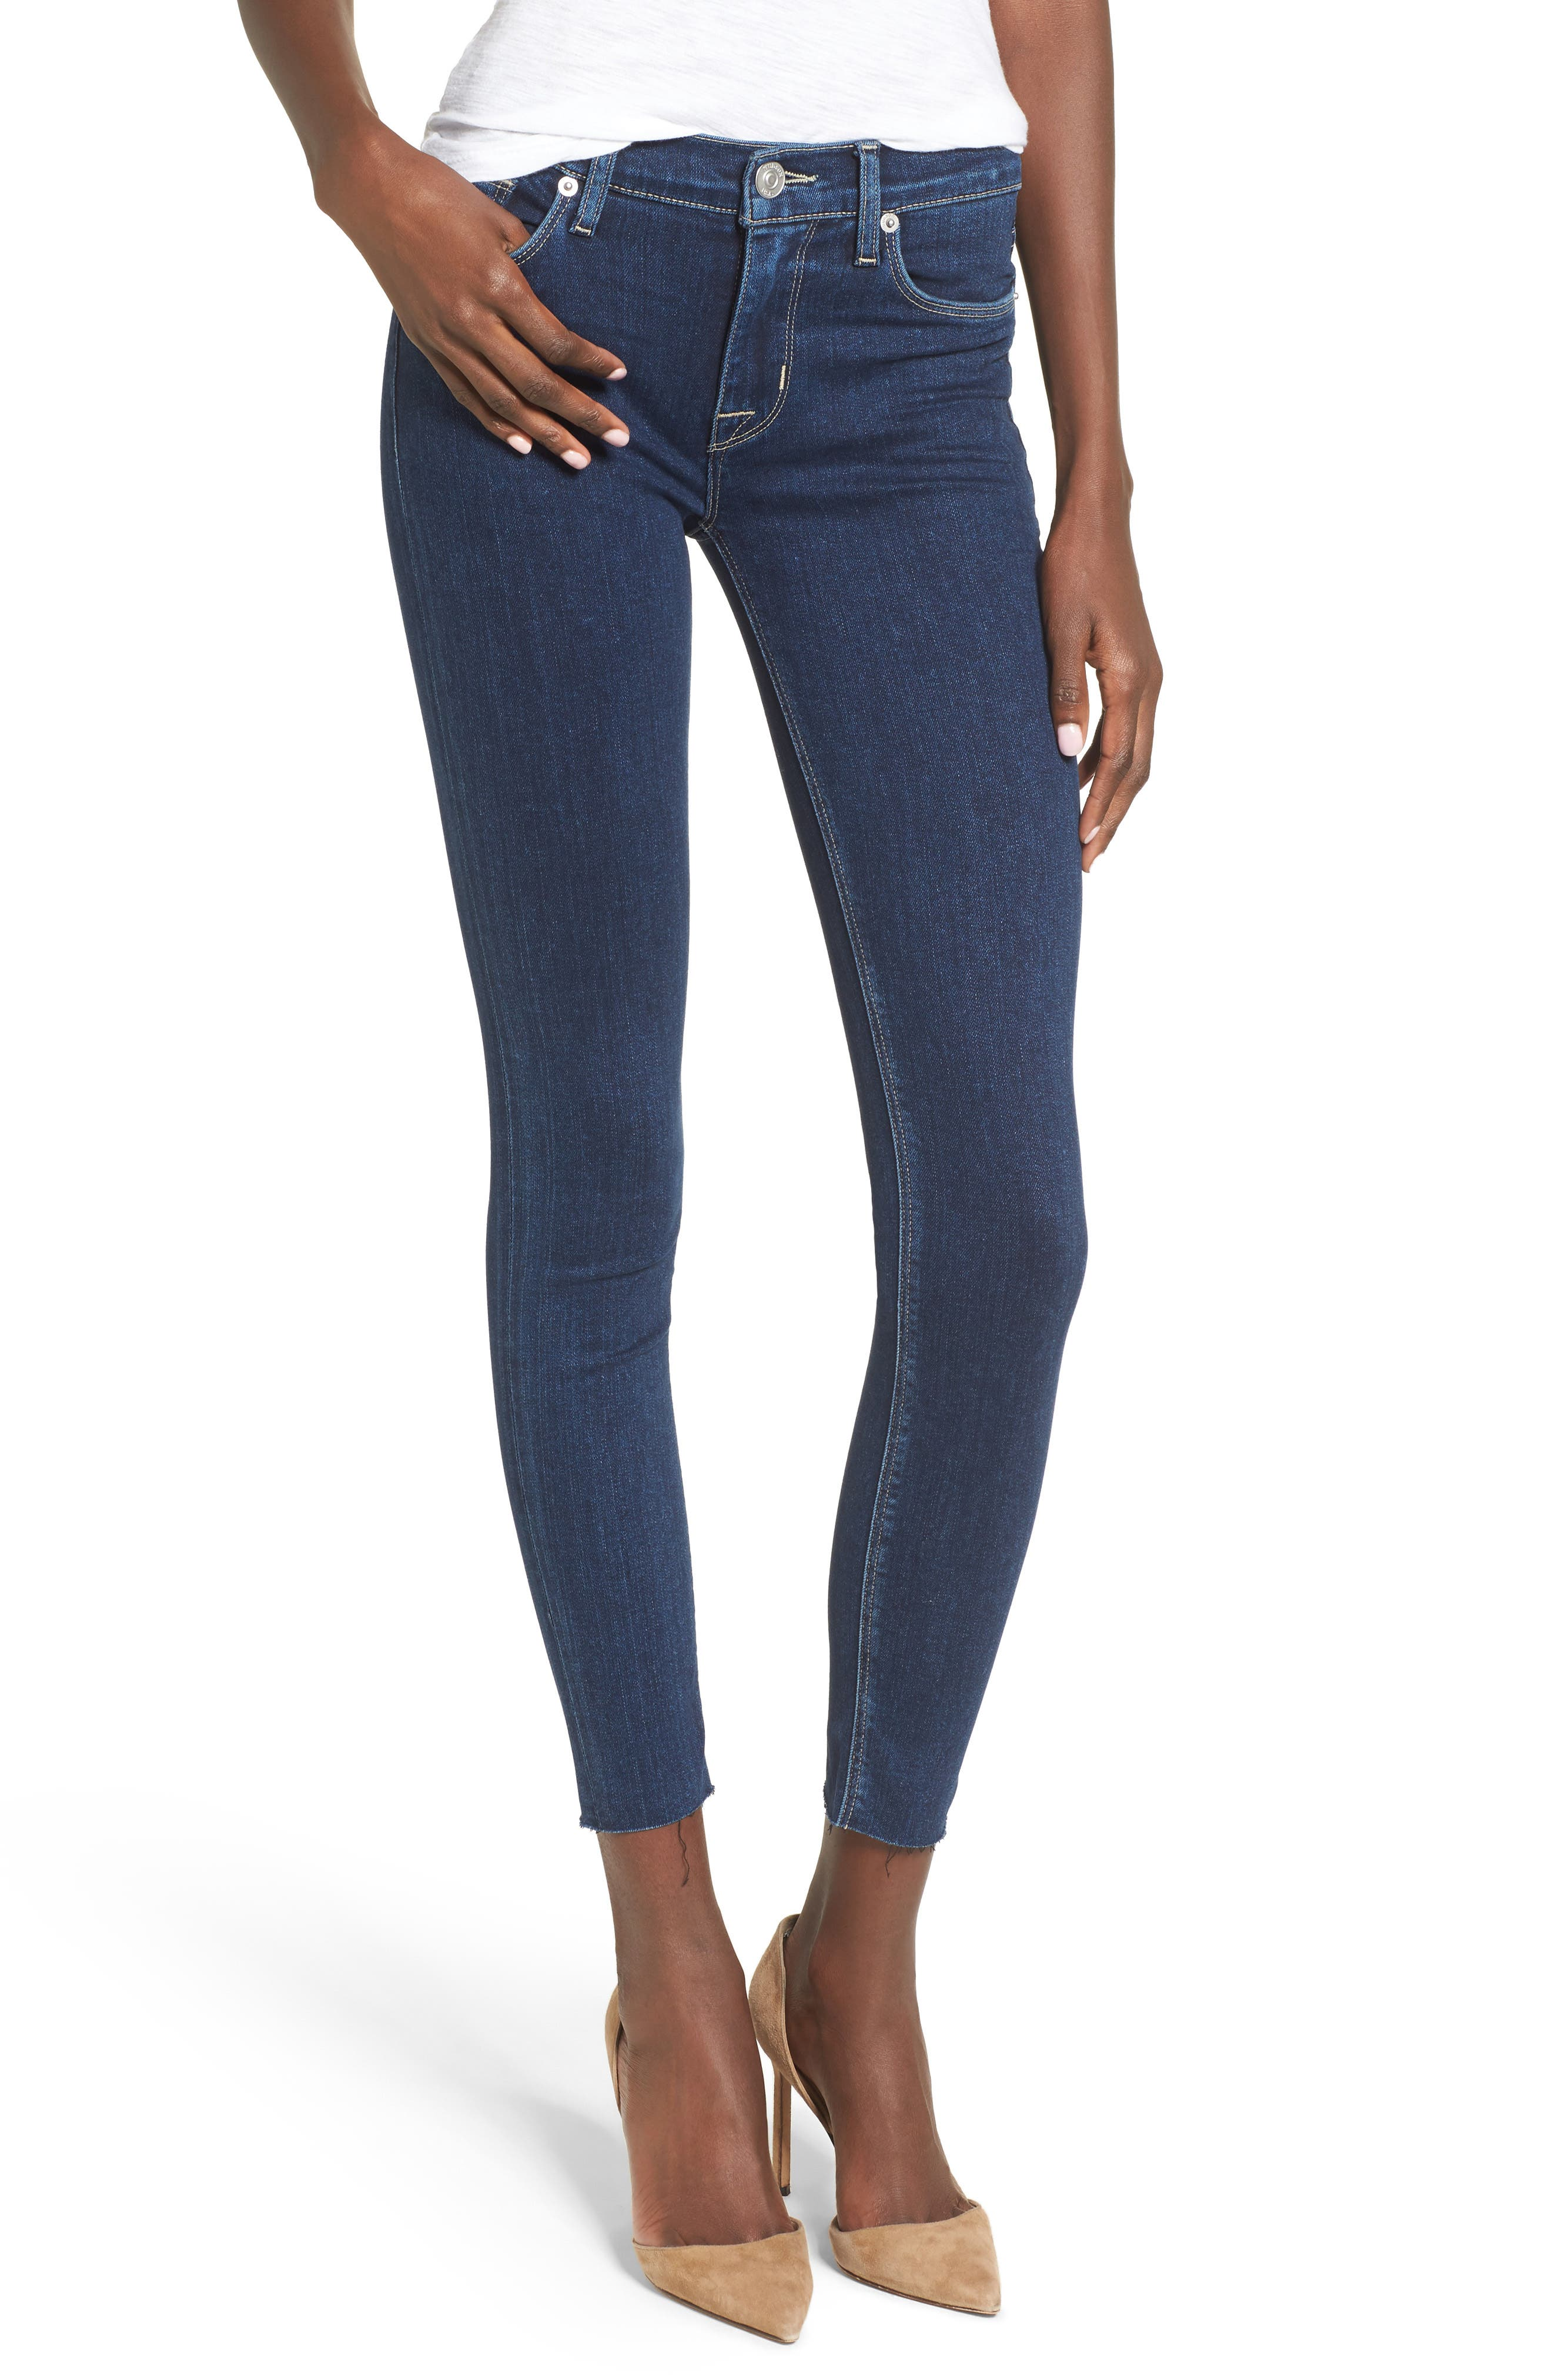 Alternate Image 1 Selected - Hudson Jeans Nico Ankle Skinny Jeans (Unruly)